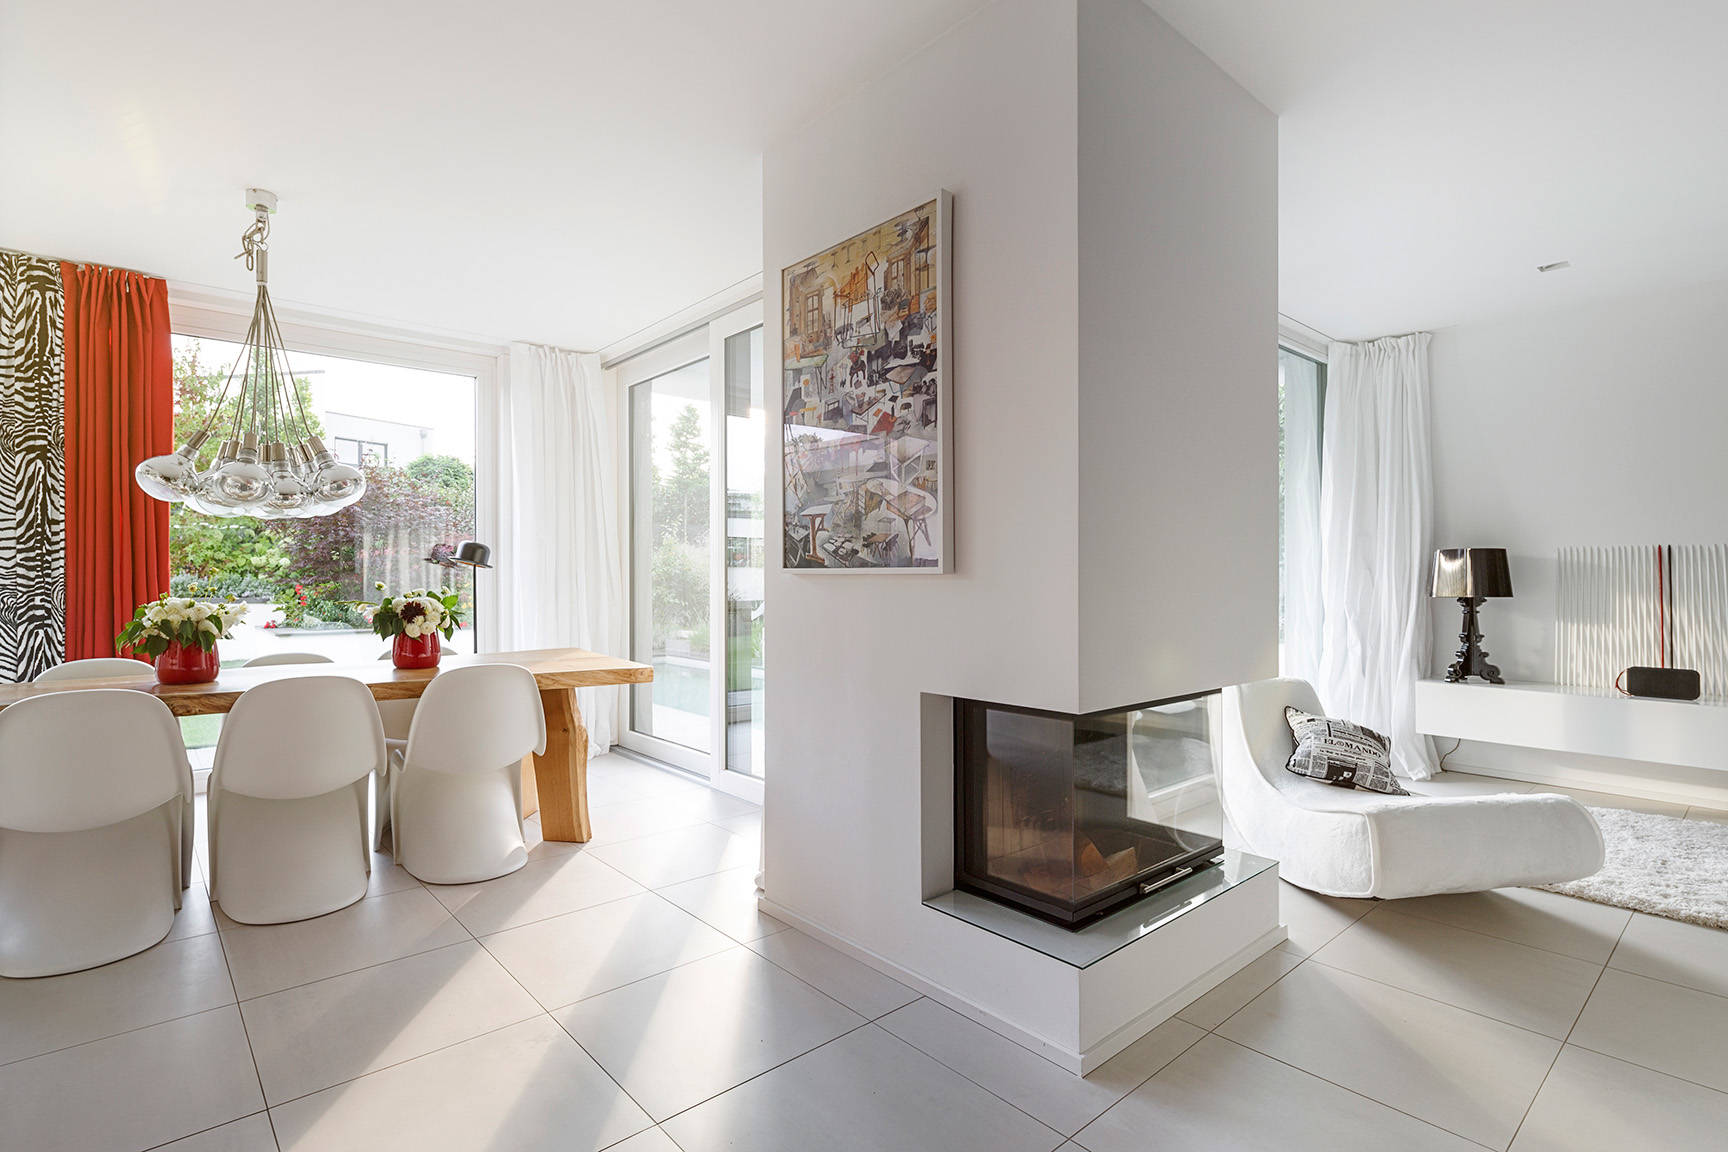 75 Beautiful Large Family Room With A Corner Fireplace Pictures Ideas March 2021 Houzz